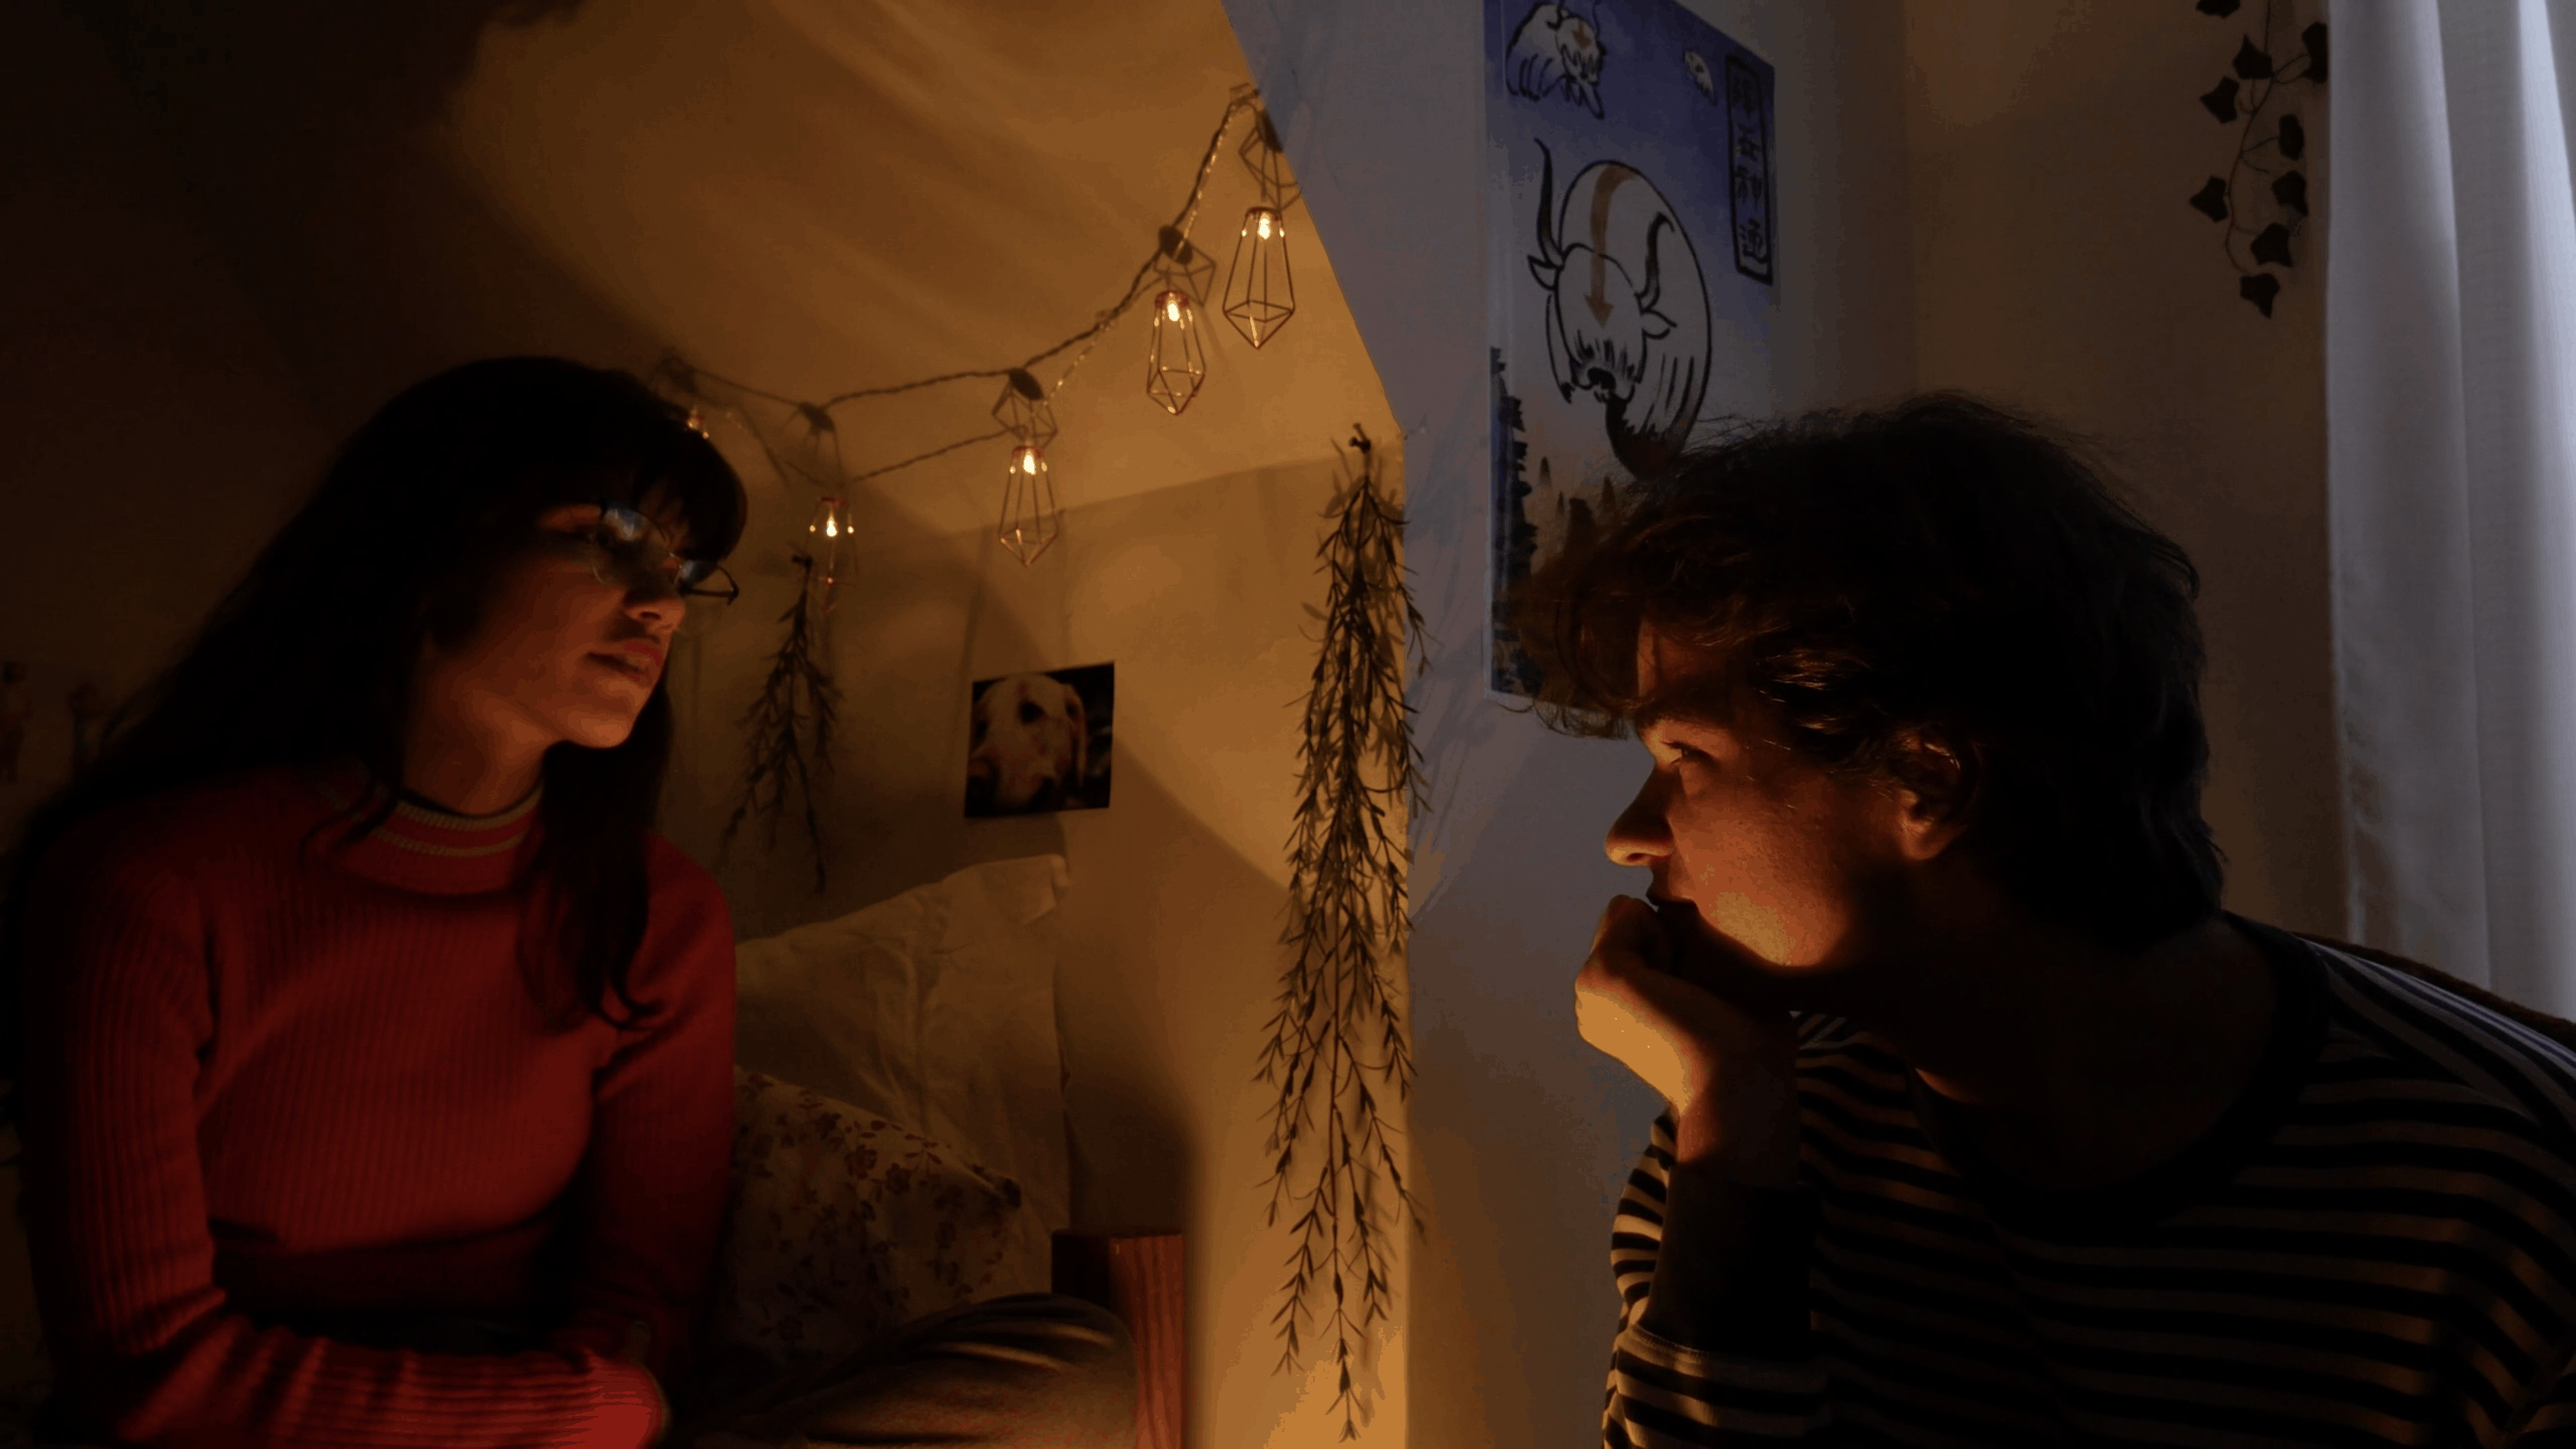 still image from video of two people facing each other in a white room lit with string lights